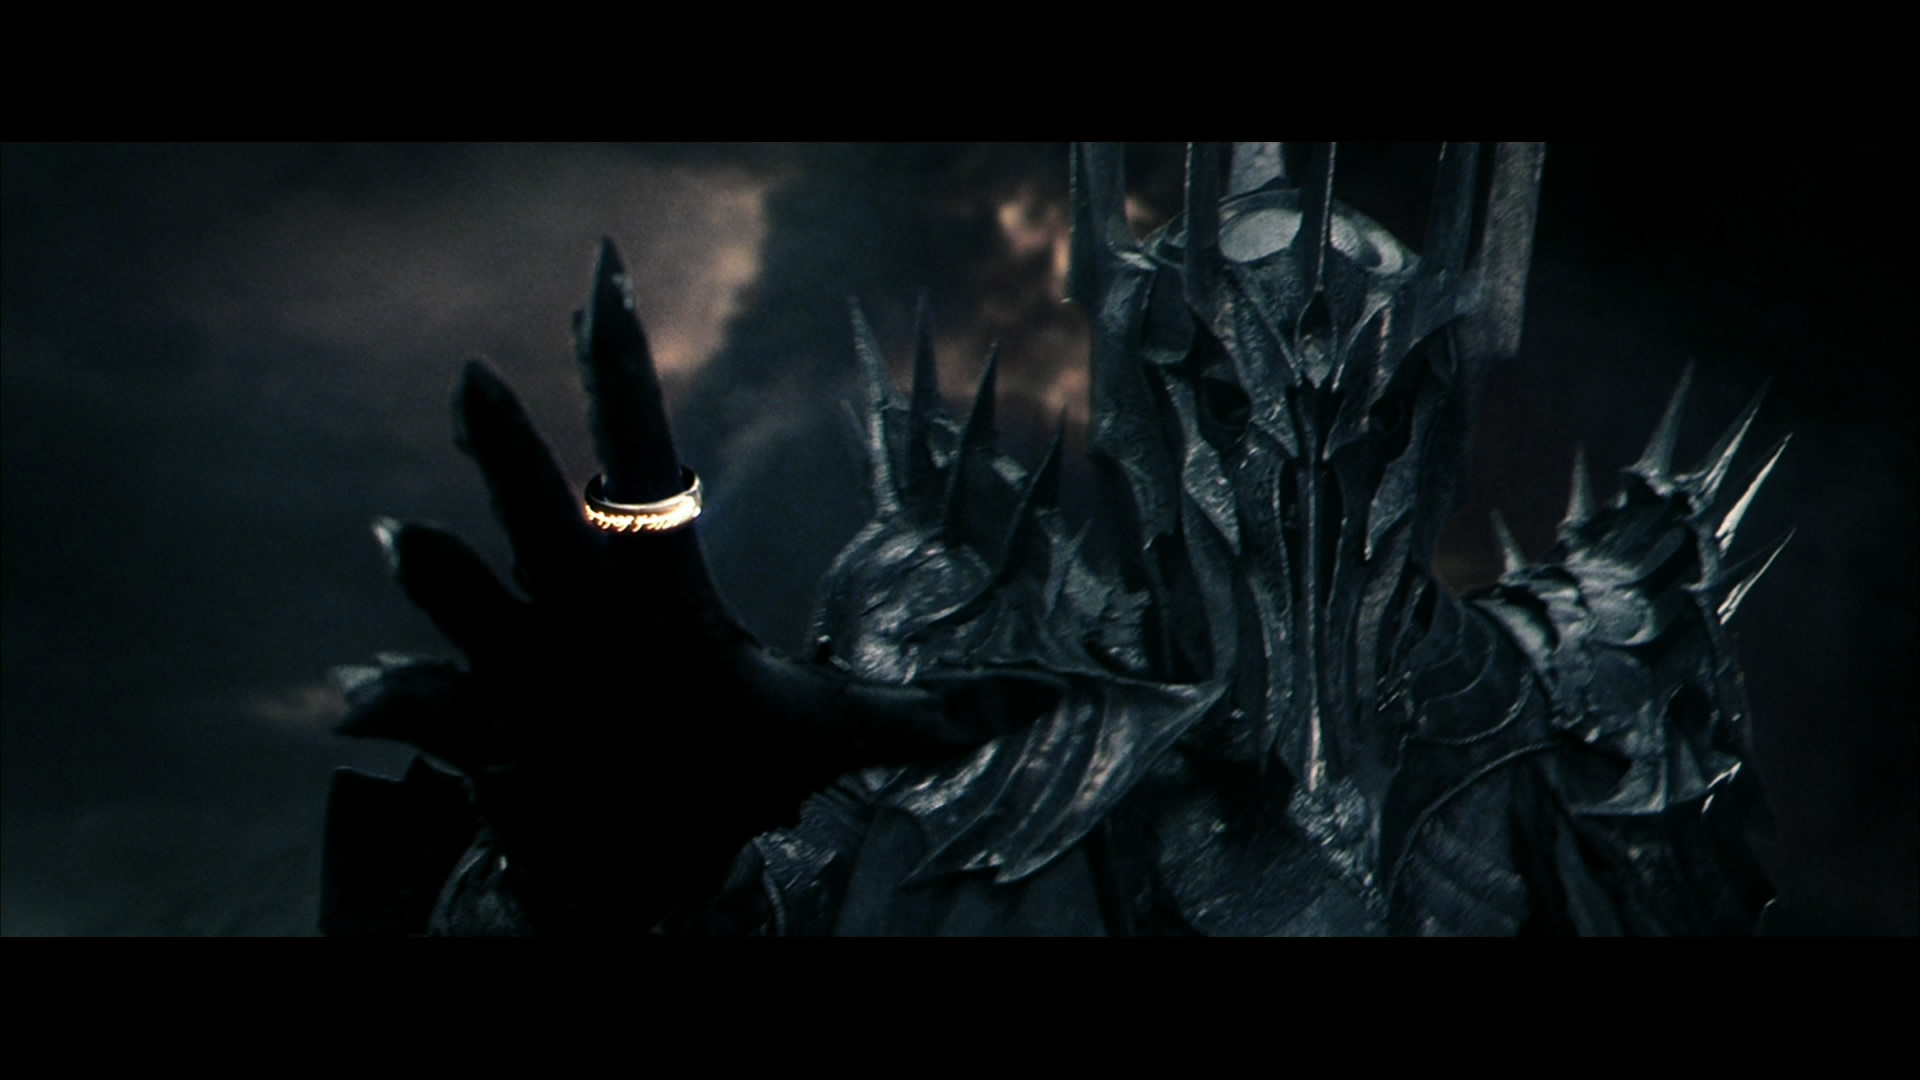 The Evil Suaron In Lord Of The Rings